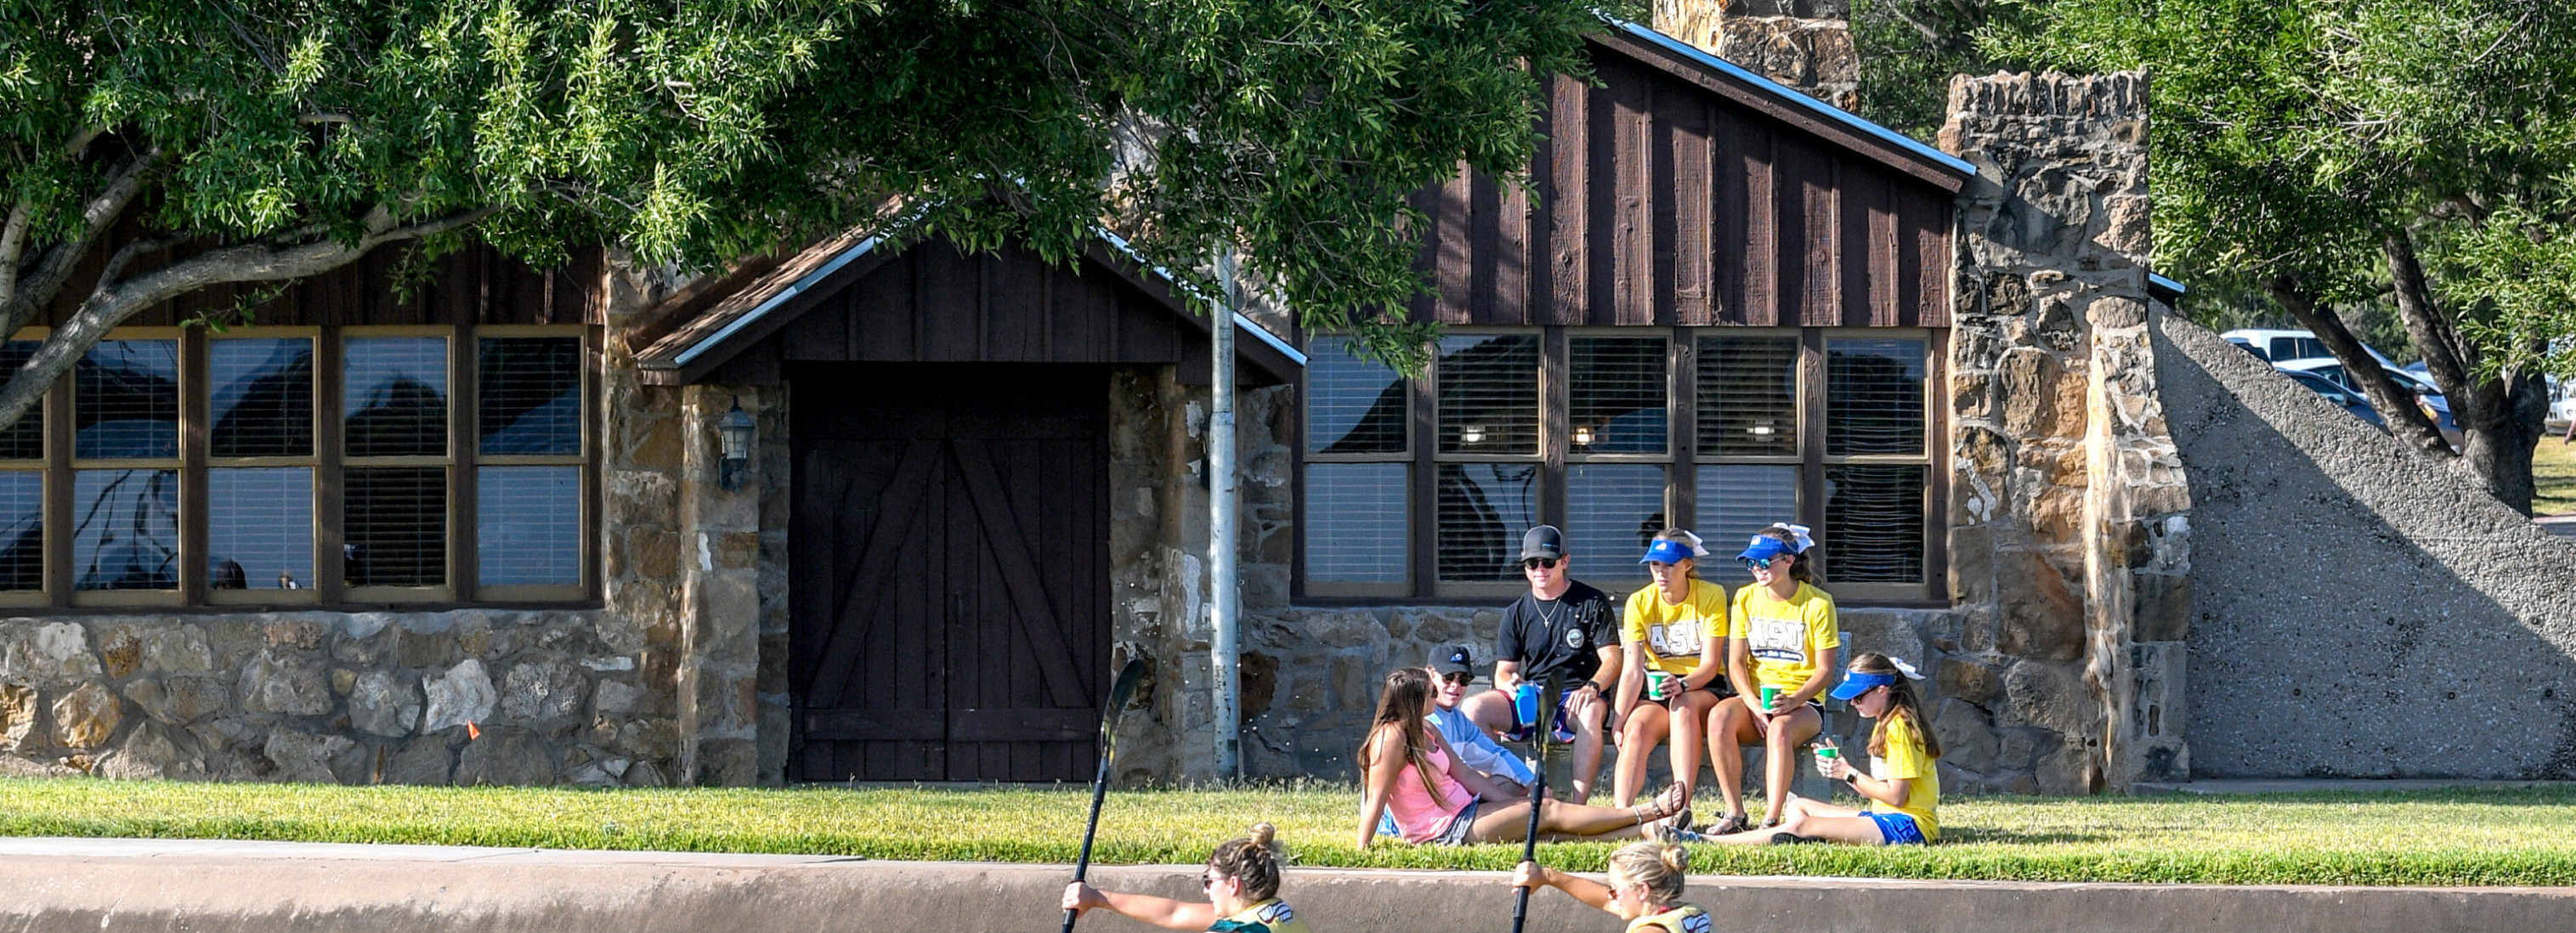 Students sitting outside the lake house